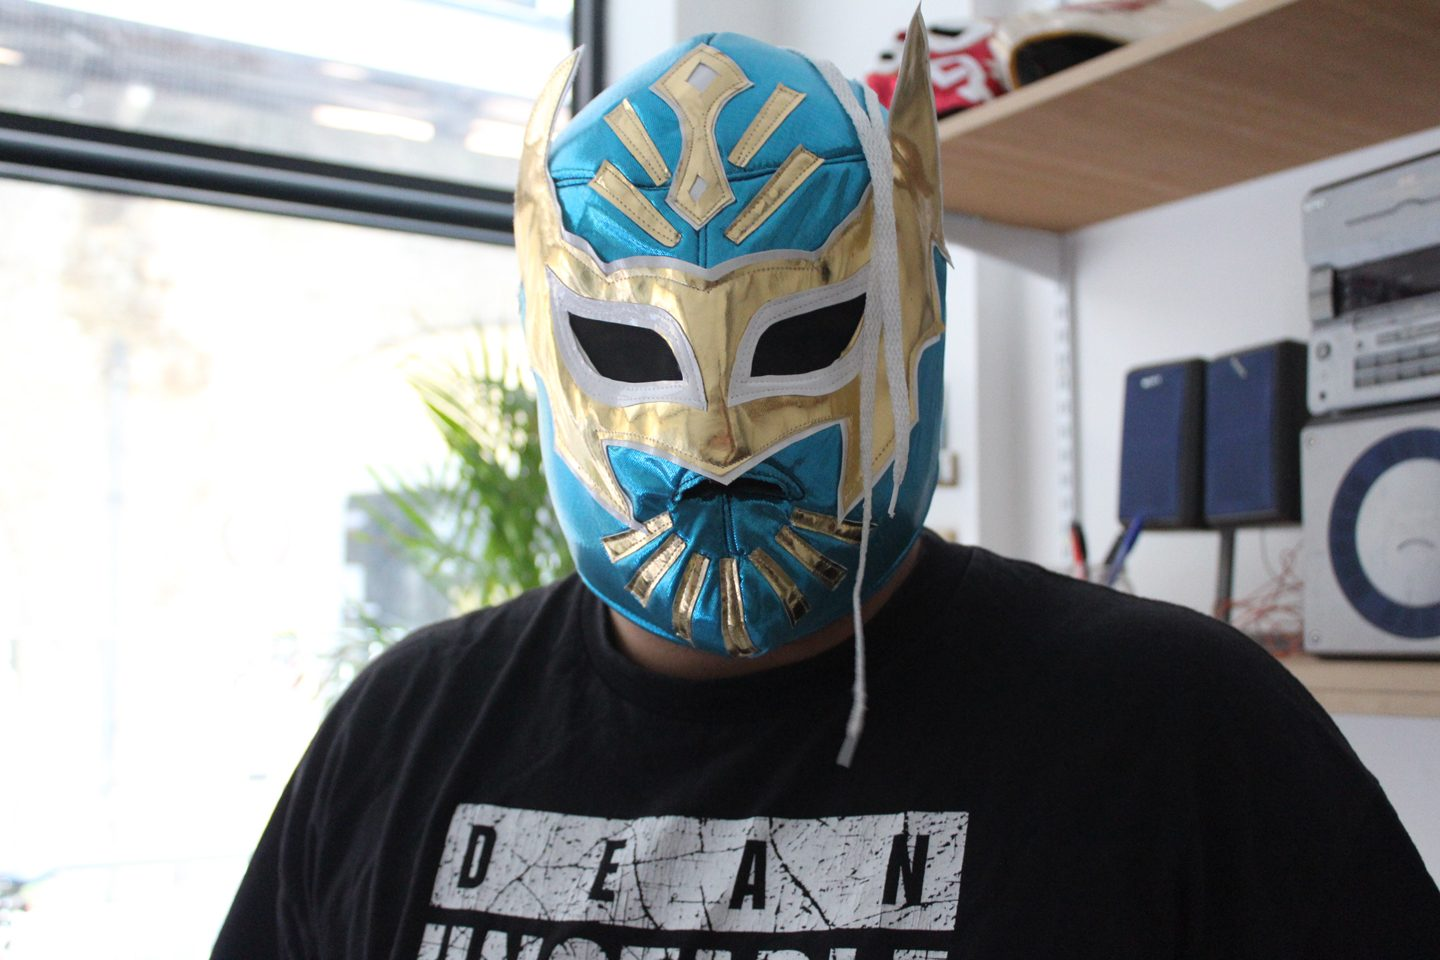 Art Assassin Mehmet Cucel poses with a wrestling mask during a visit to Andrea Franke's studio.